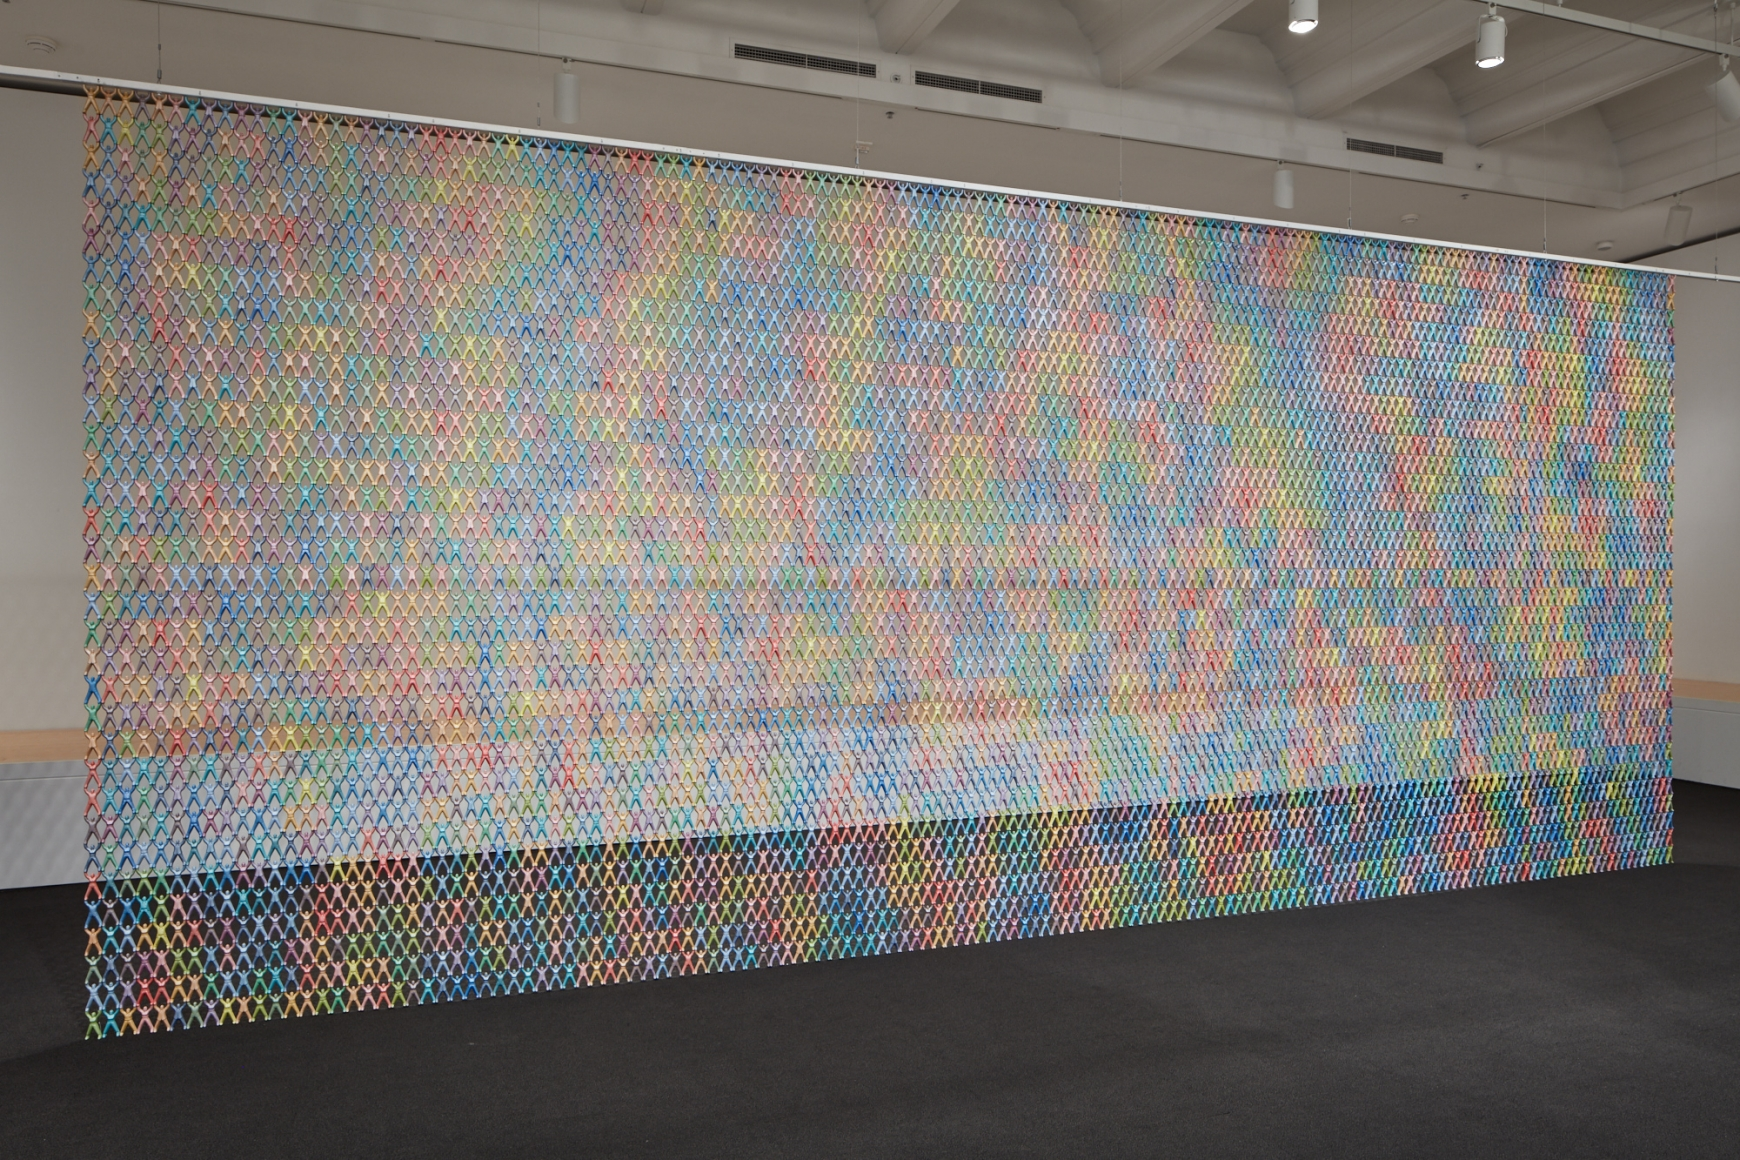 DO HO SUH, Screen, 2005